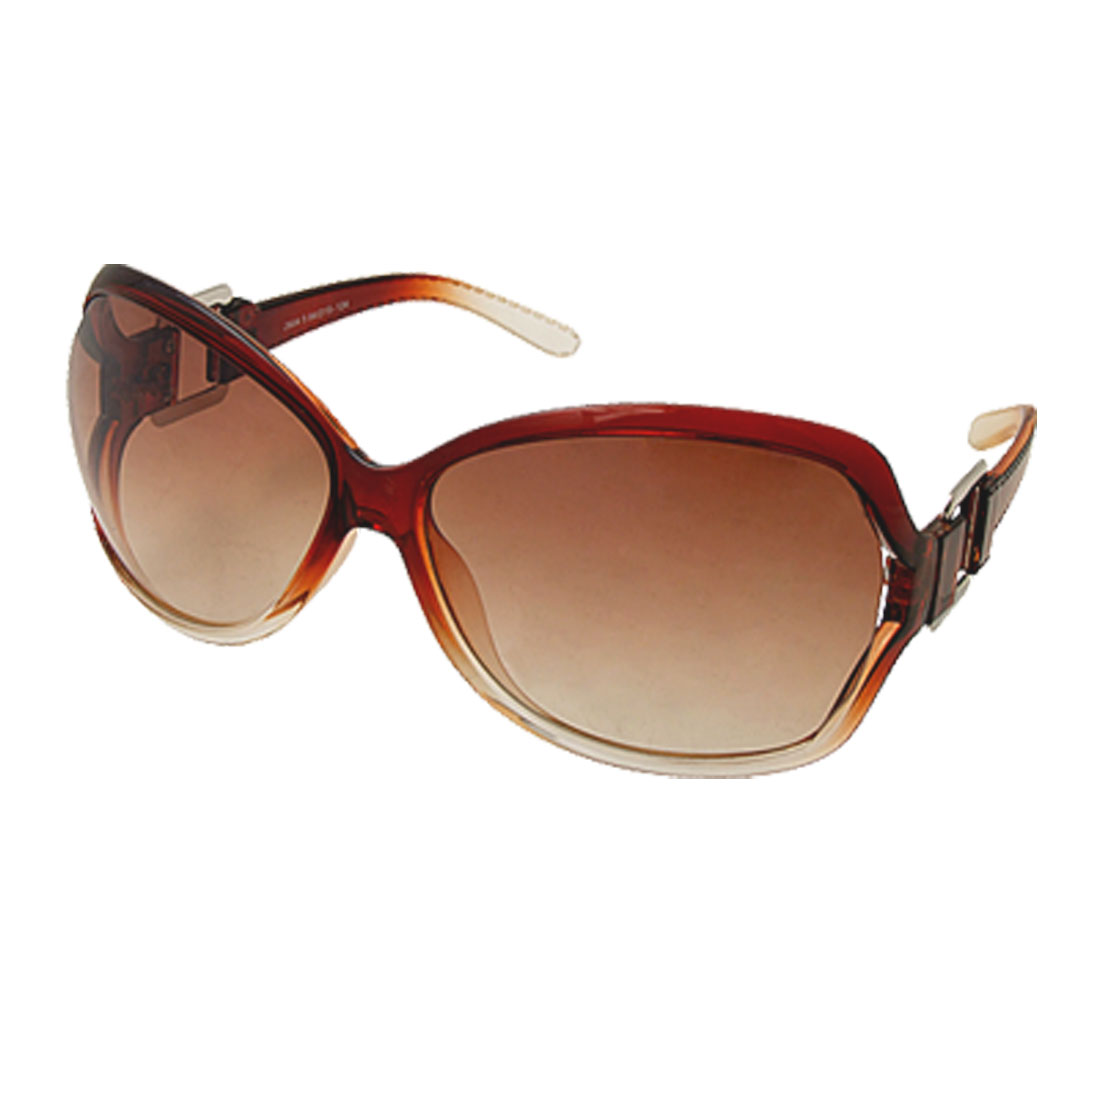 Summer Women's Ladies Fashion Sunglasses Eyewear